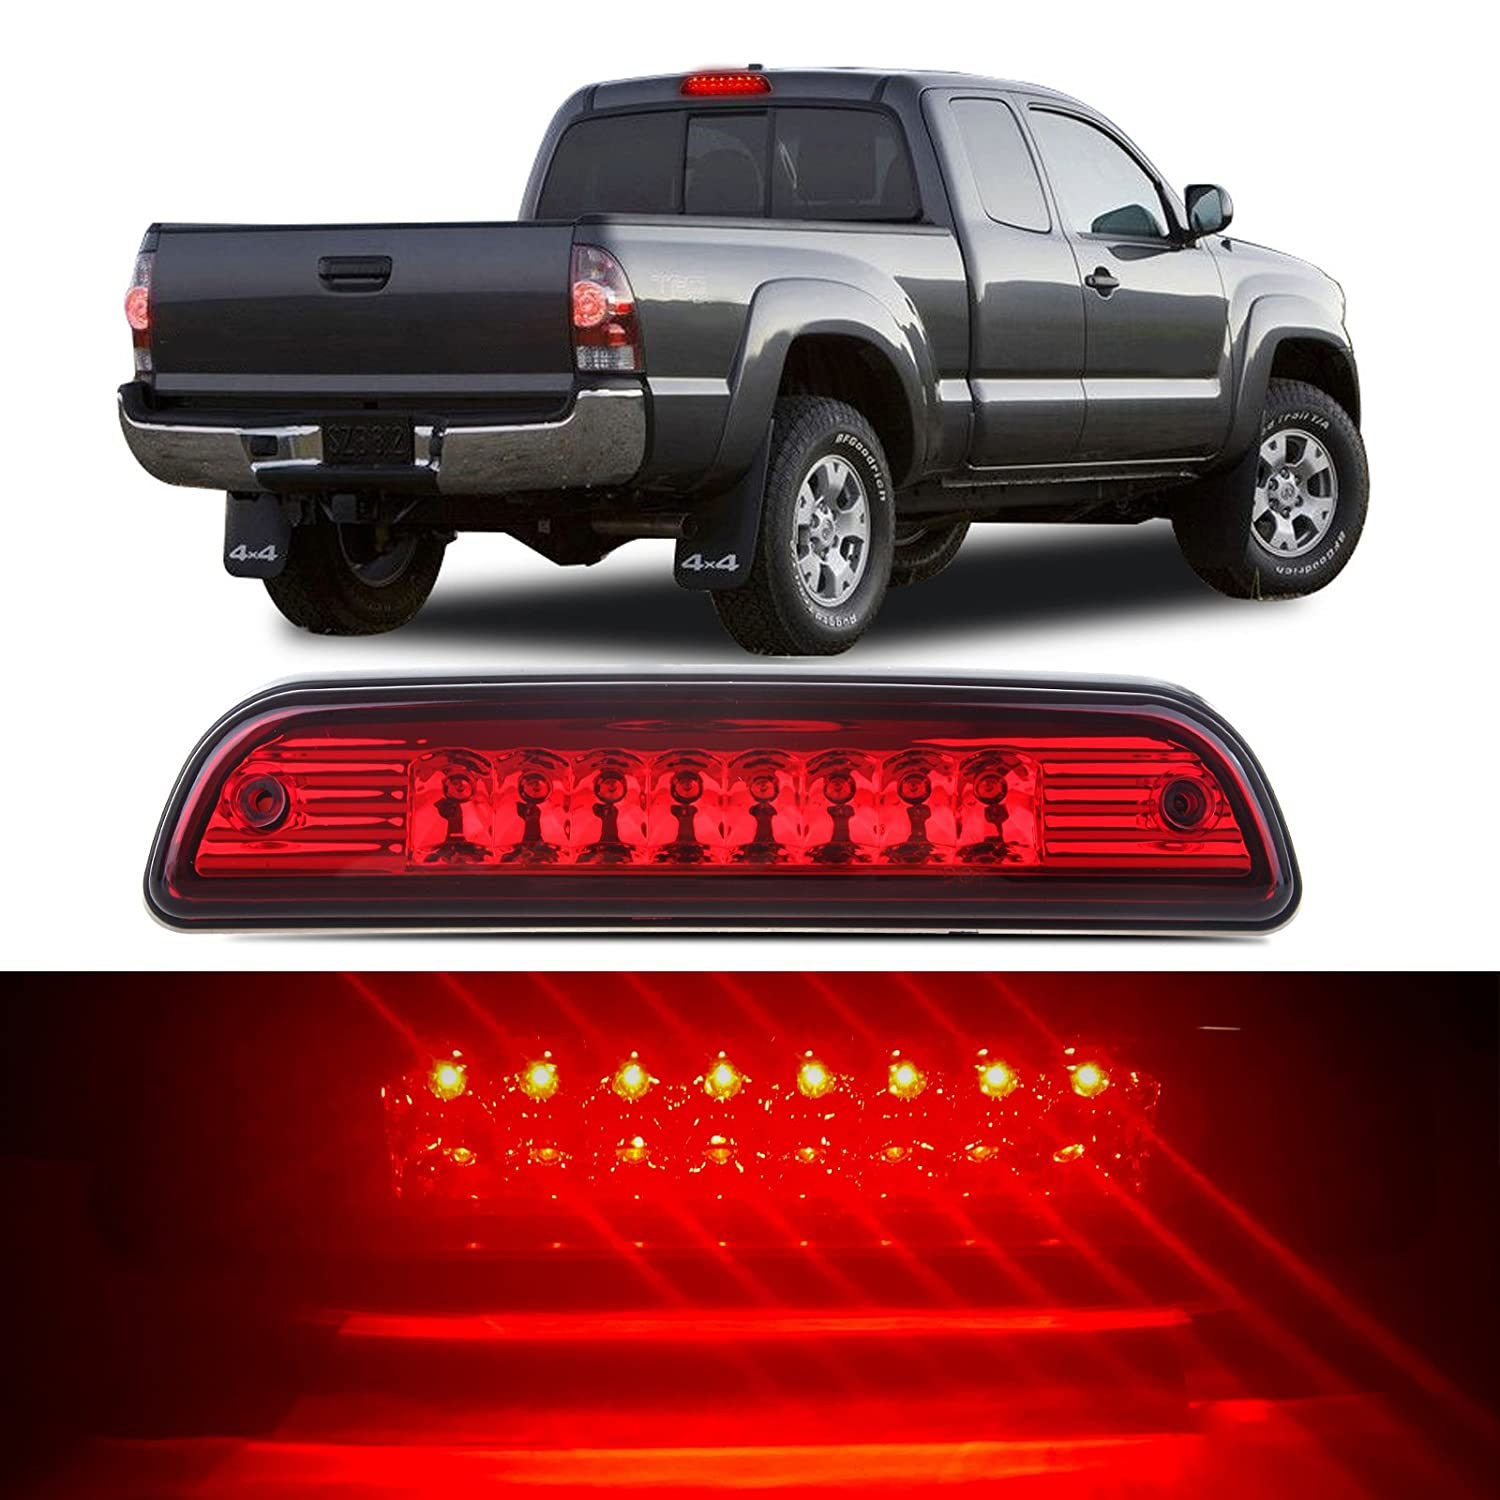 High Mount Stop Lights LED 3rd Red Brake Tail Light Replacement fit for 1995-2016 Toyota Tacoma Truck (Red) cciyu 121901-5210-1635181